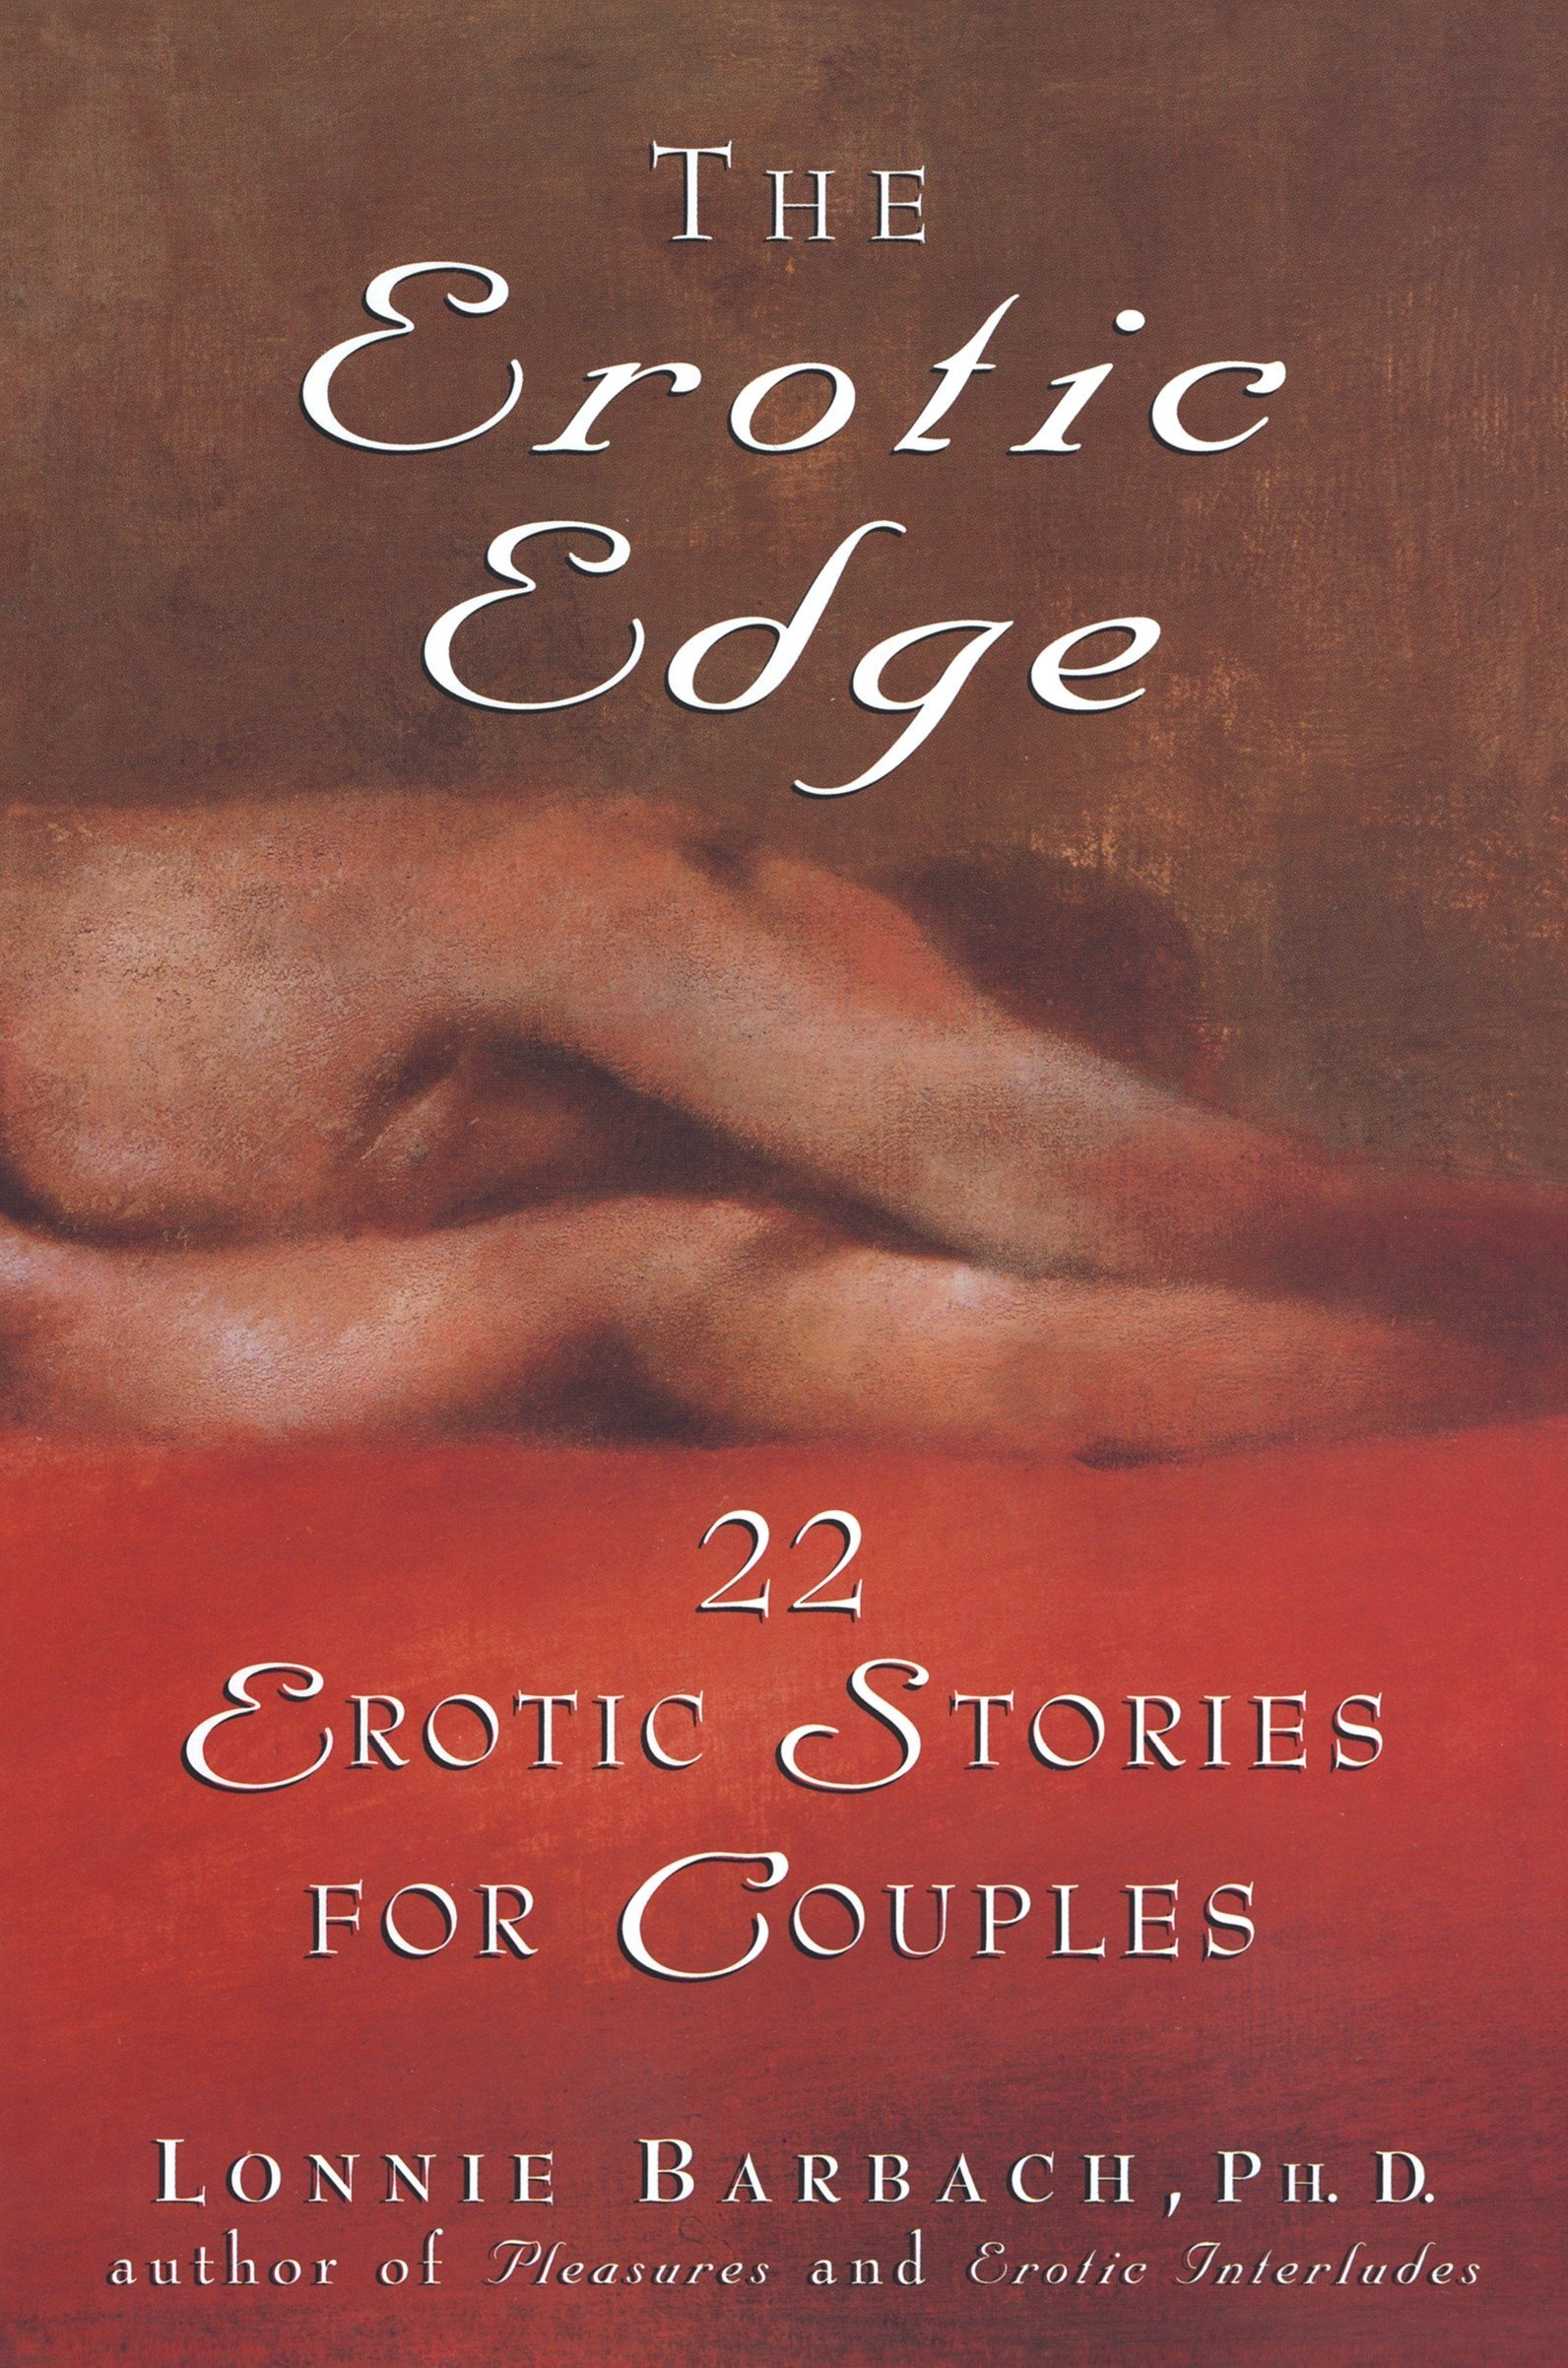 Erotic stories paperback in